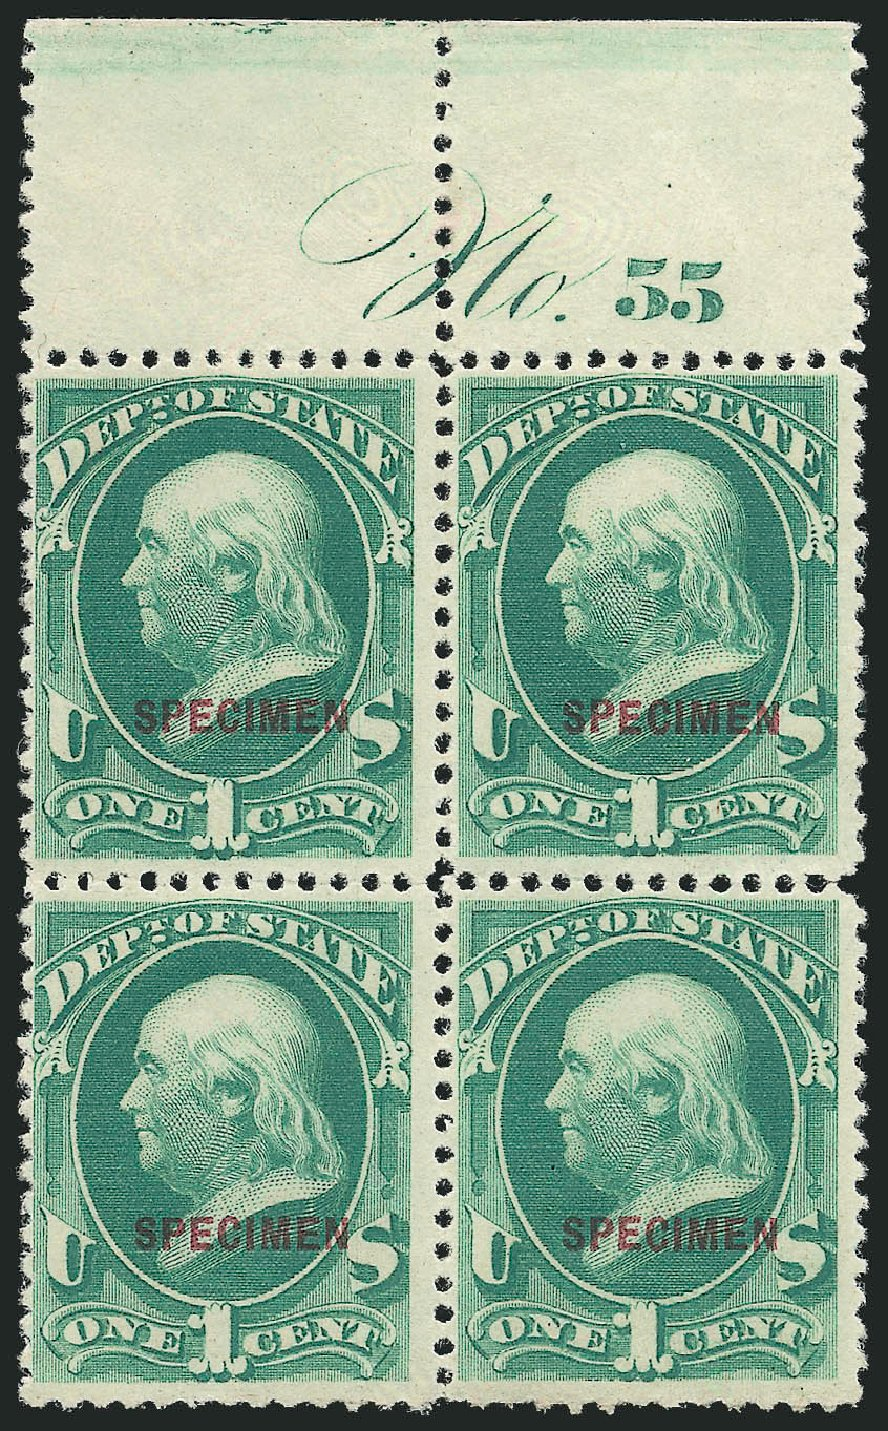 US Stamp Price Scott Catalogue # O57 - 1873 1c State Official. Robert Siegel Auction Galleries, Mar 2015, Sale 1095, Lot 670